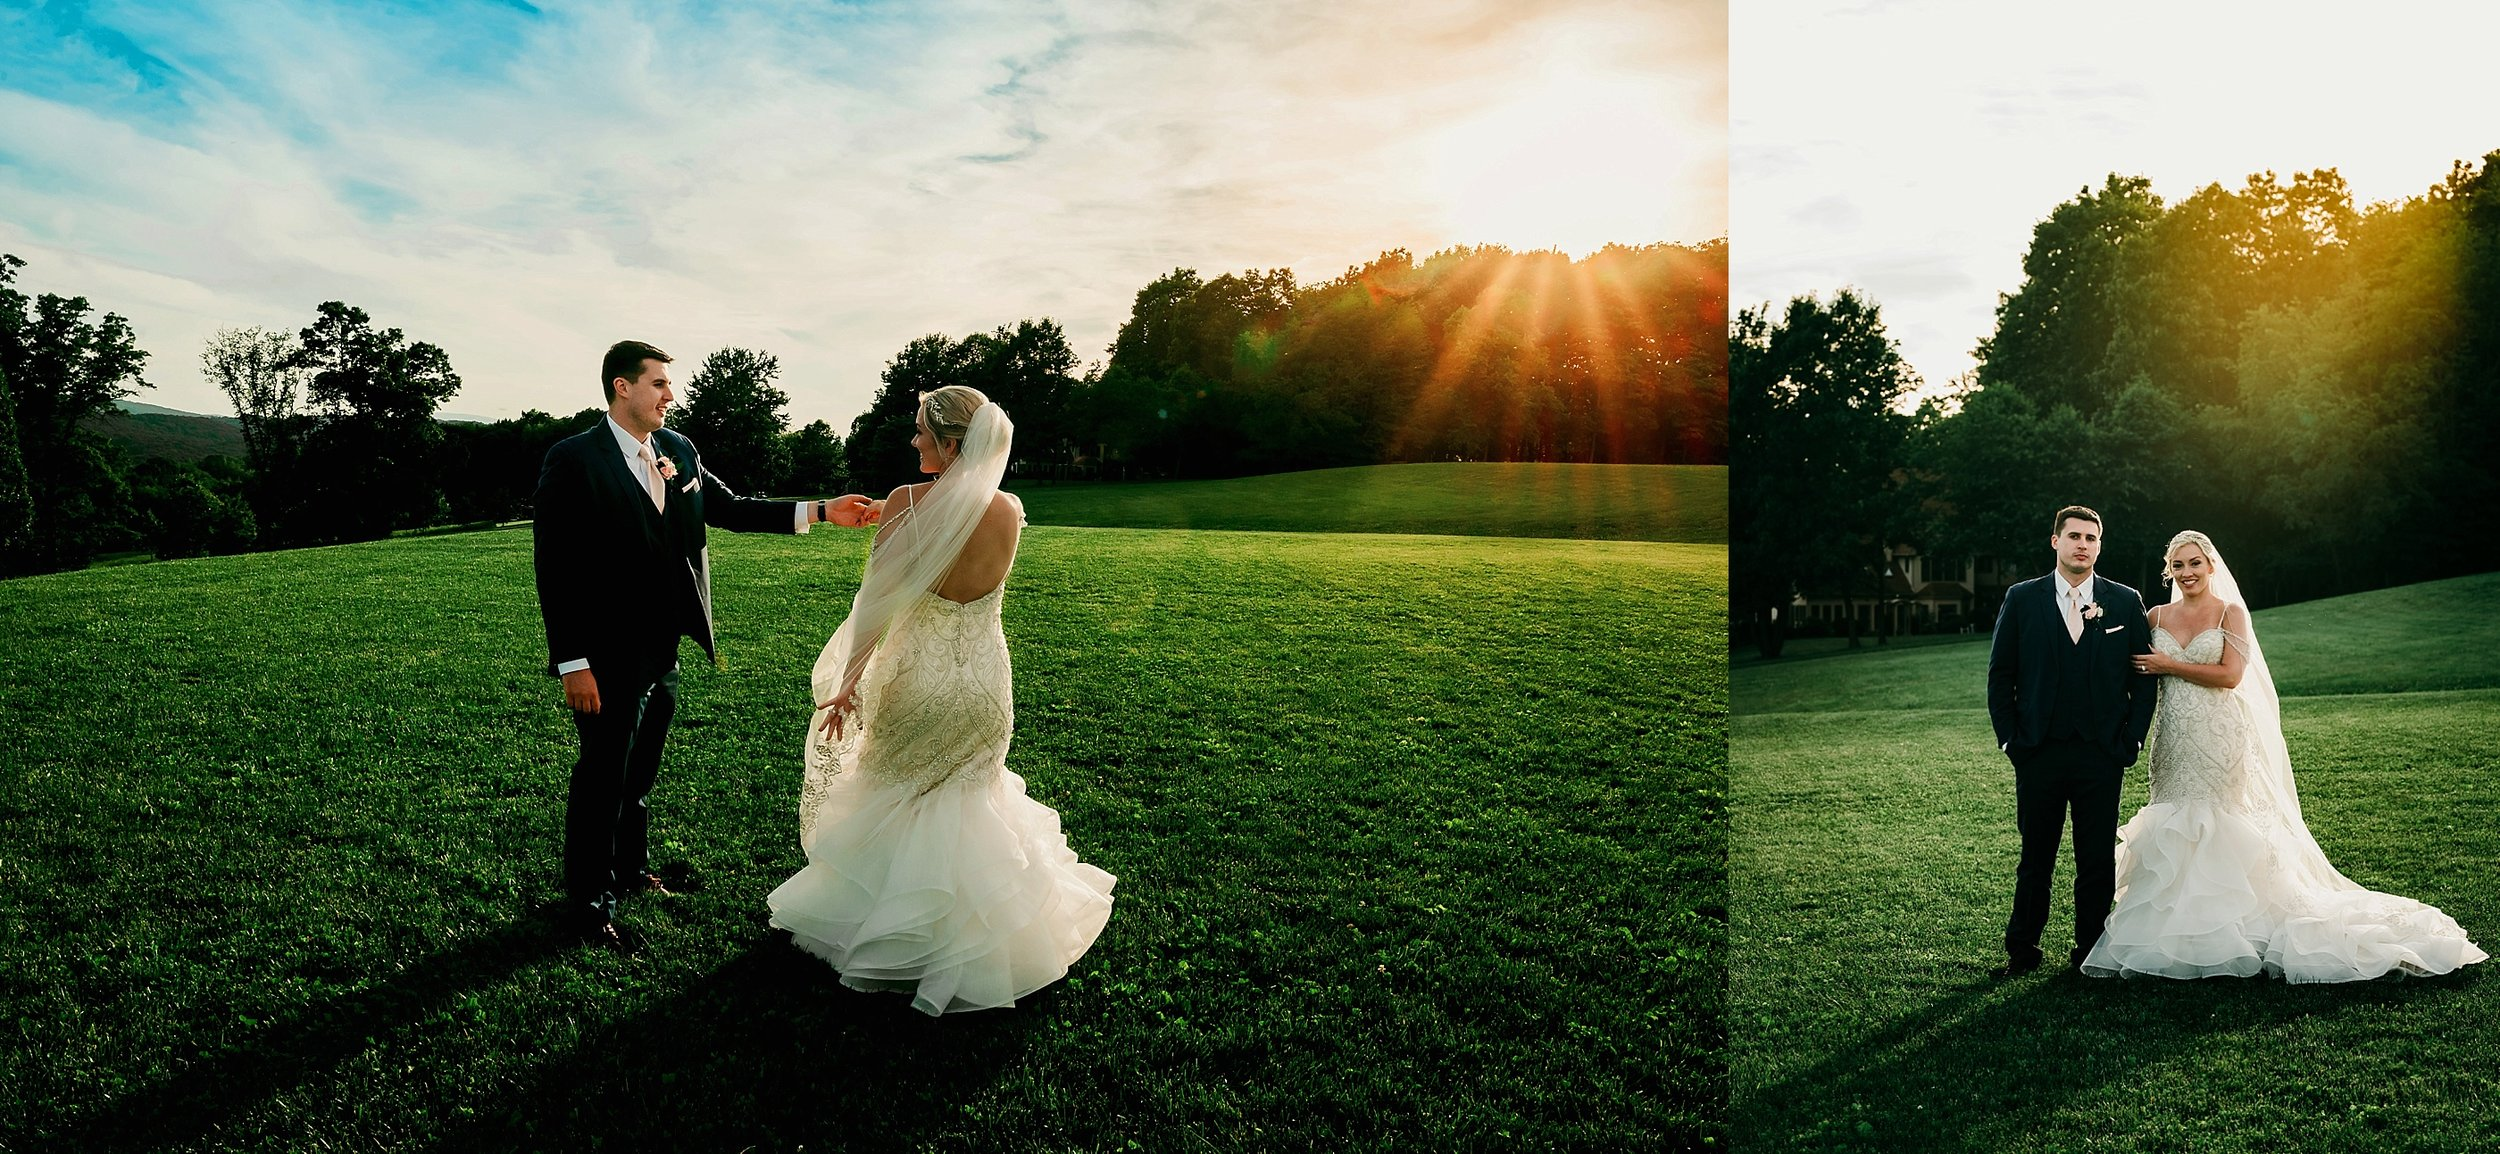 And my favorite part of the day…sneaking out of the reception for sunset portraits. It's always worth it for a few minutes of this goodness! :-)